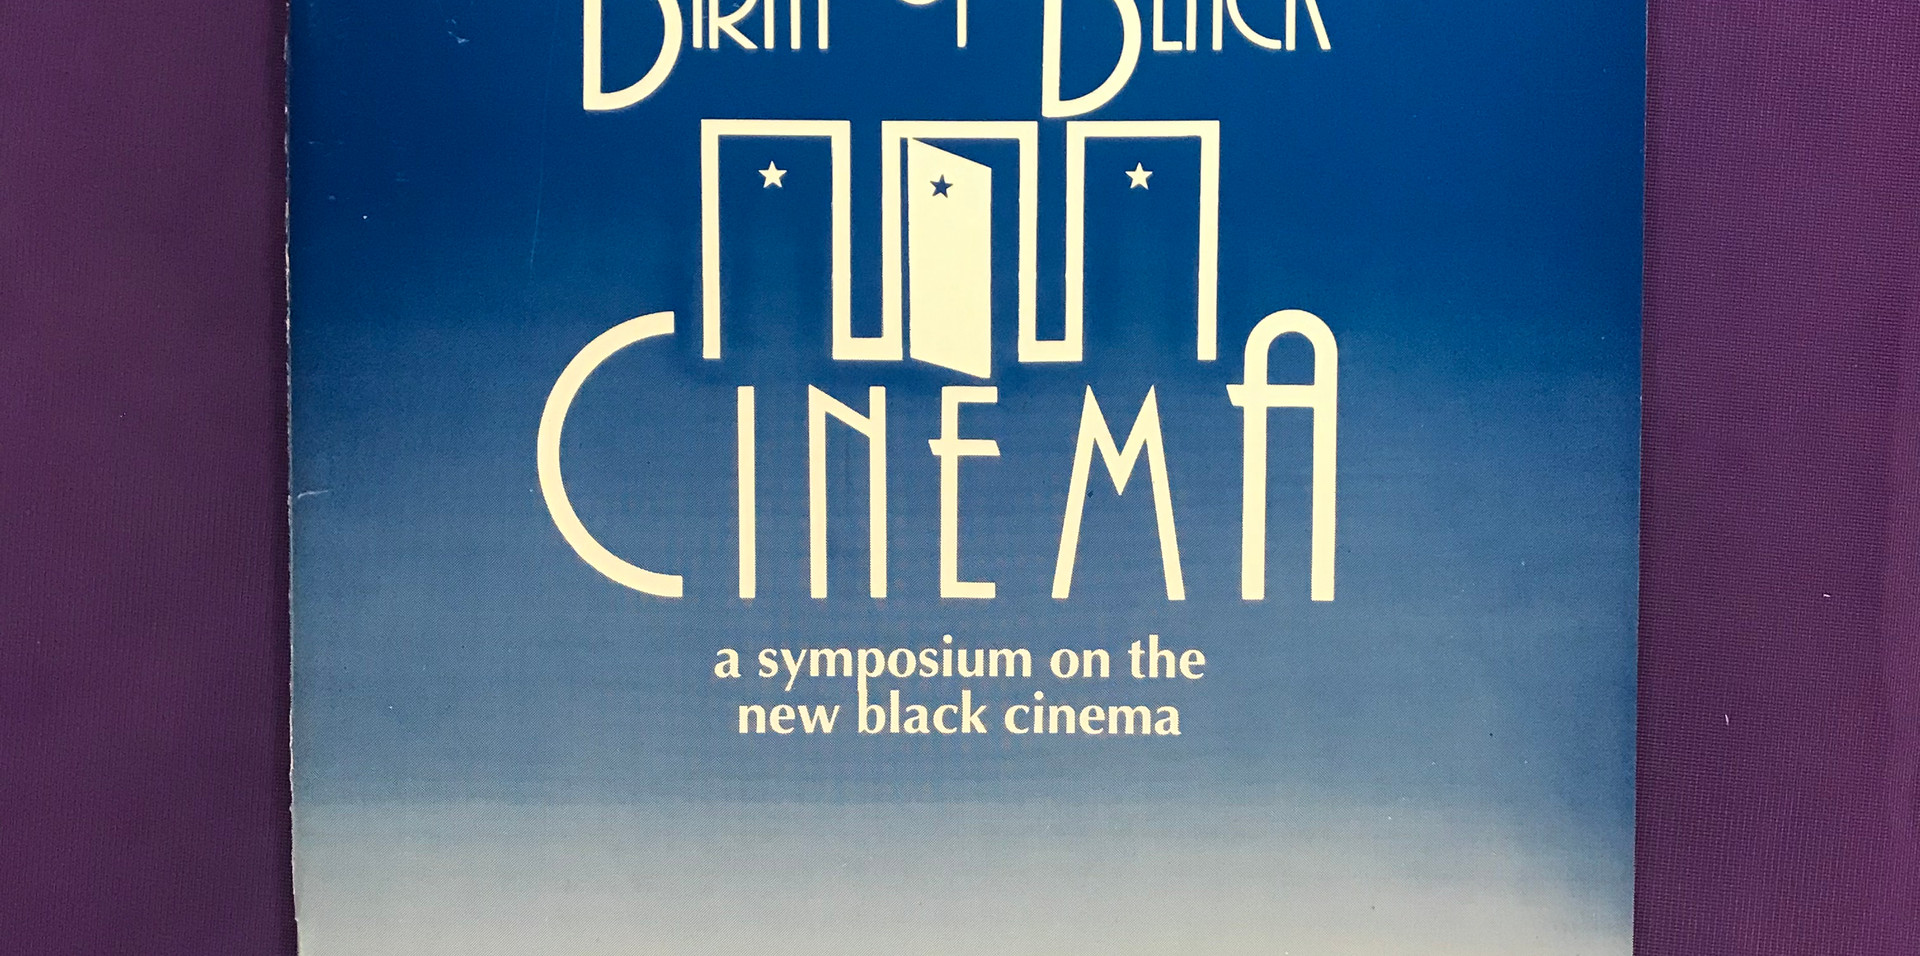 """Program of the """"The Birth of Black Cinema"""" three-day symposium held at the NYS Writers Institute in November 1988. Sponsored by Toni Morrison, the event featured filmmakers and critics including Toni Cade Bambara, St. Clair Bourne, Haile Gerima, Spike Lee, James Snead and Hortense Spillers."""